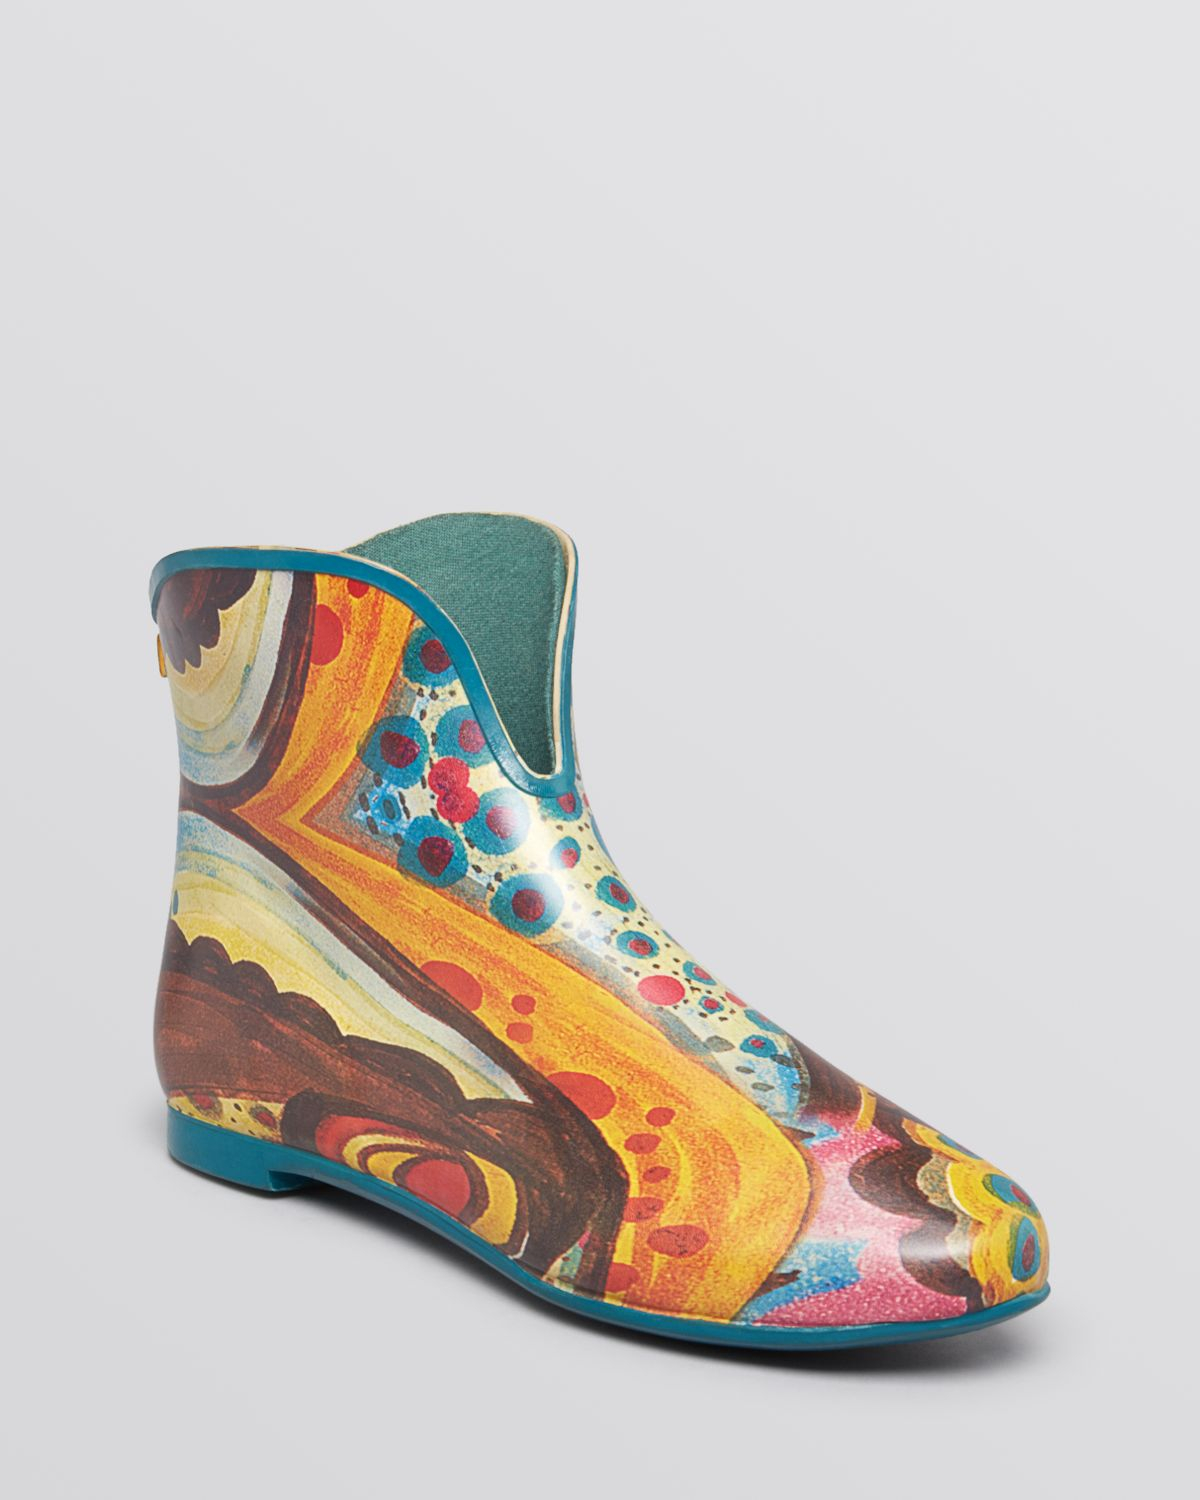 Are Jeffrey Campbell Shoes In Us Sizes